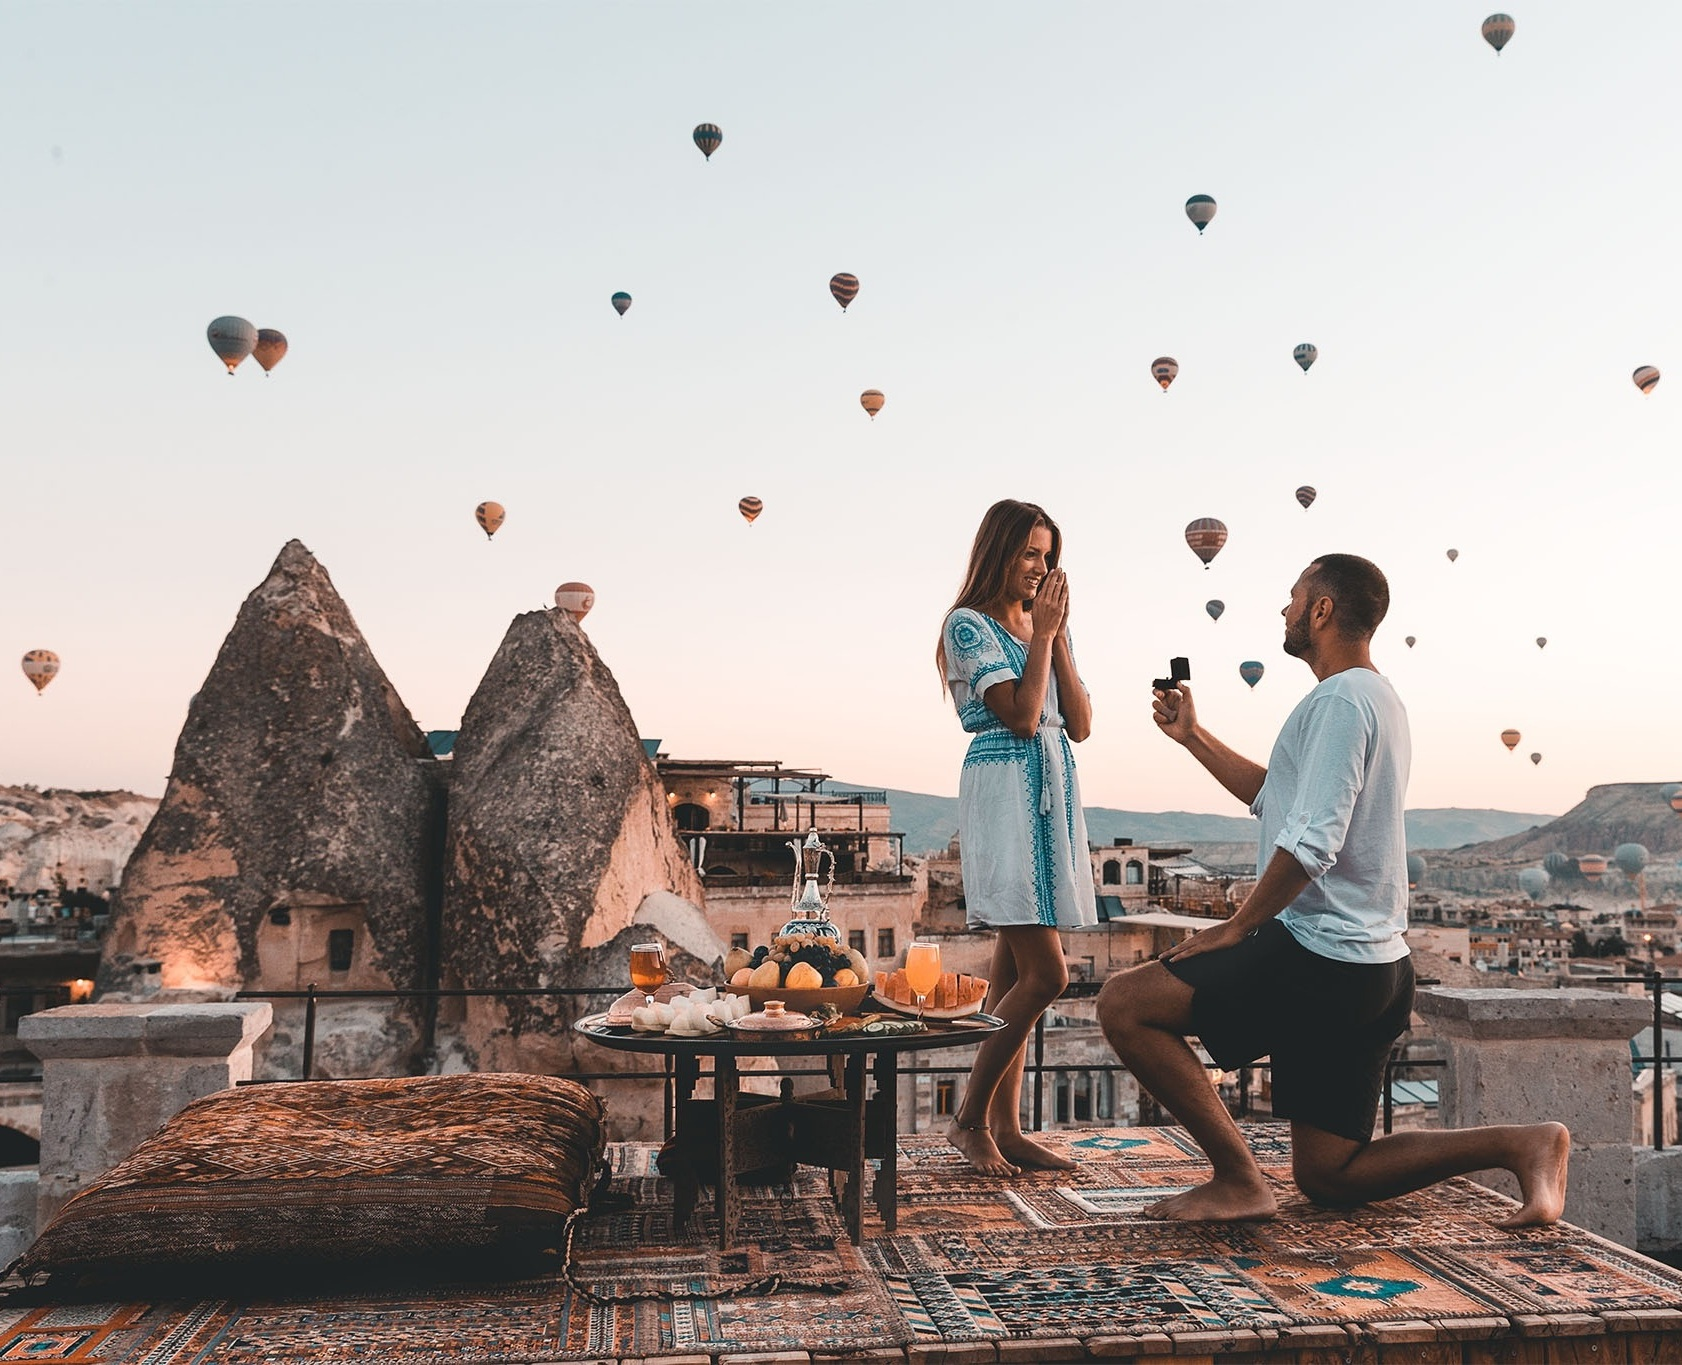 Source: Chris and Jen Likins Photography  An alternative way to go is taking your partner on a getaway, Turkey for instance, and proposing to them during the lift off of a million hot air balloons. Talk about the ideal surroundings.  Location: Turkey,Cappadocia.